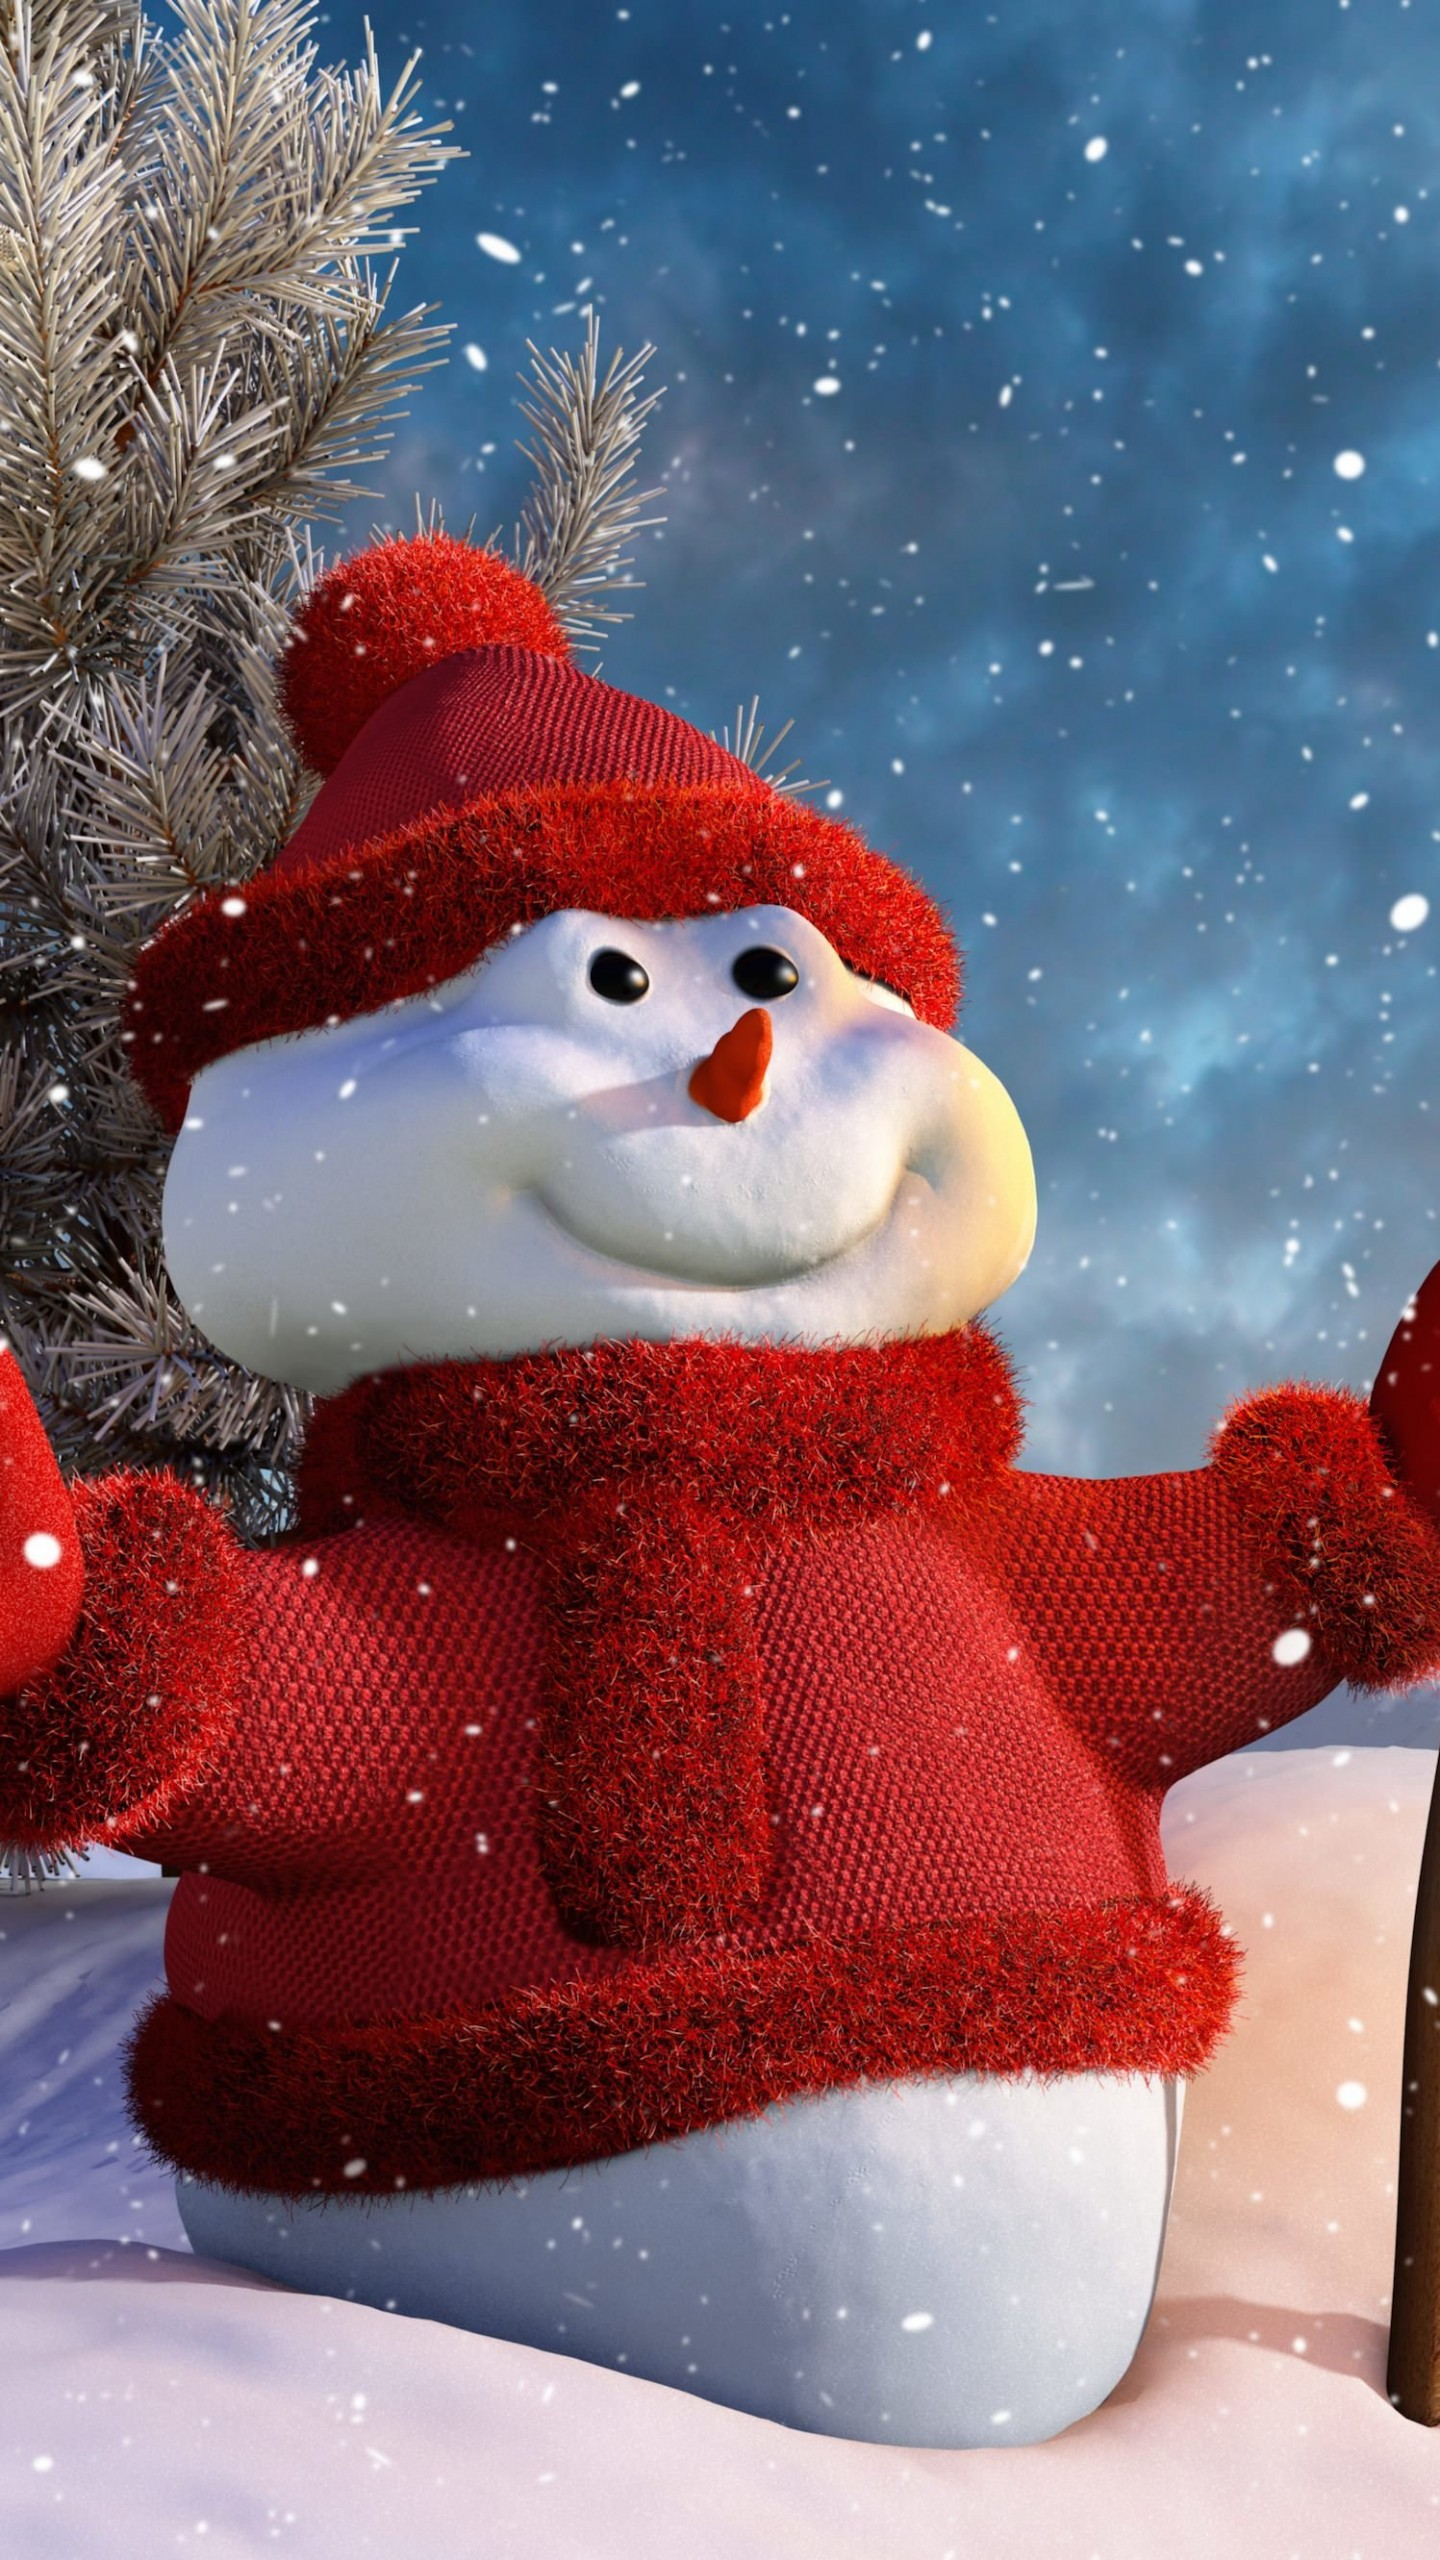 Christmas Snowman Wallpaper for SAMSUNG Galaxy Note 4